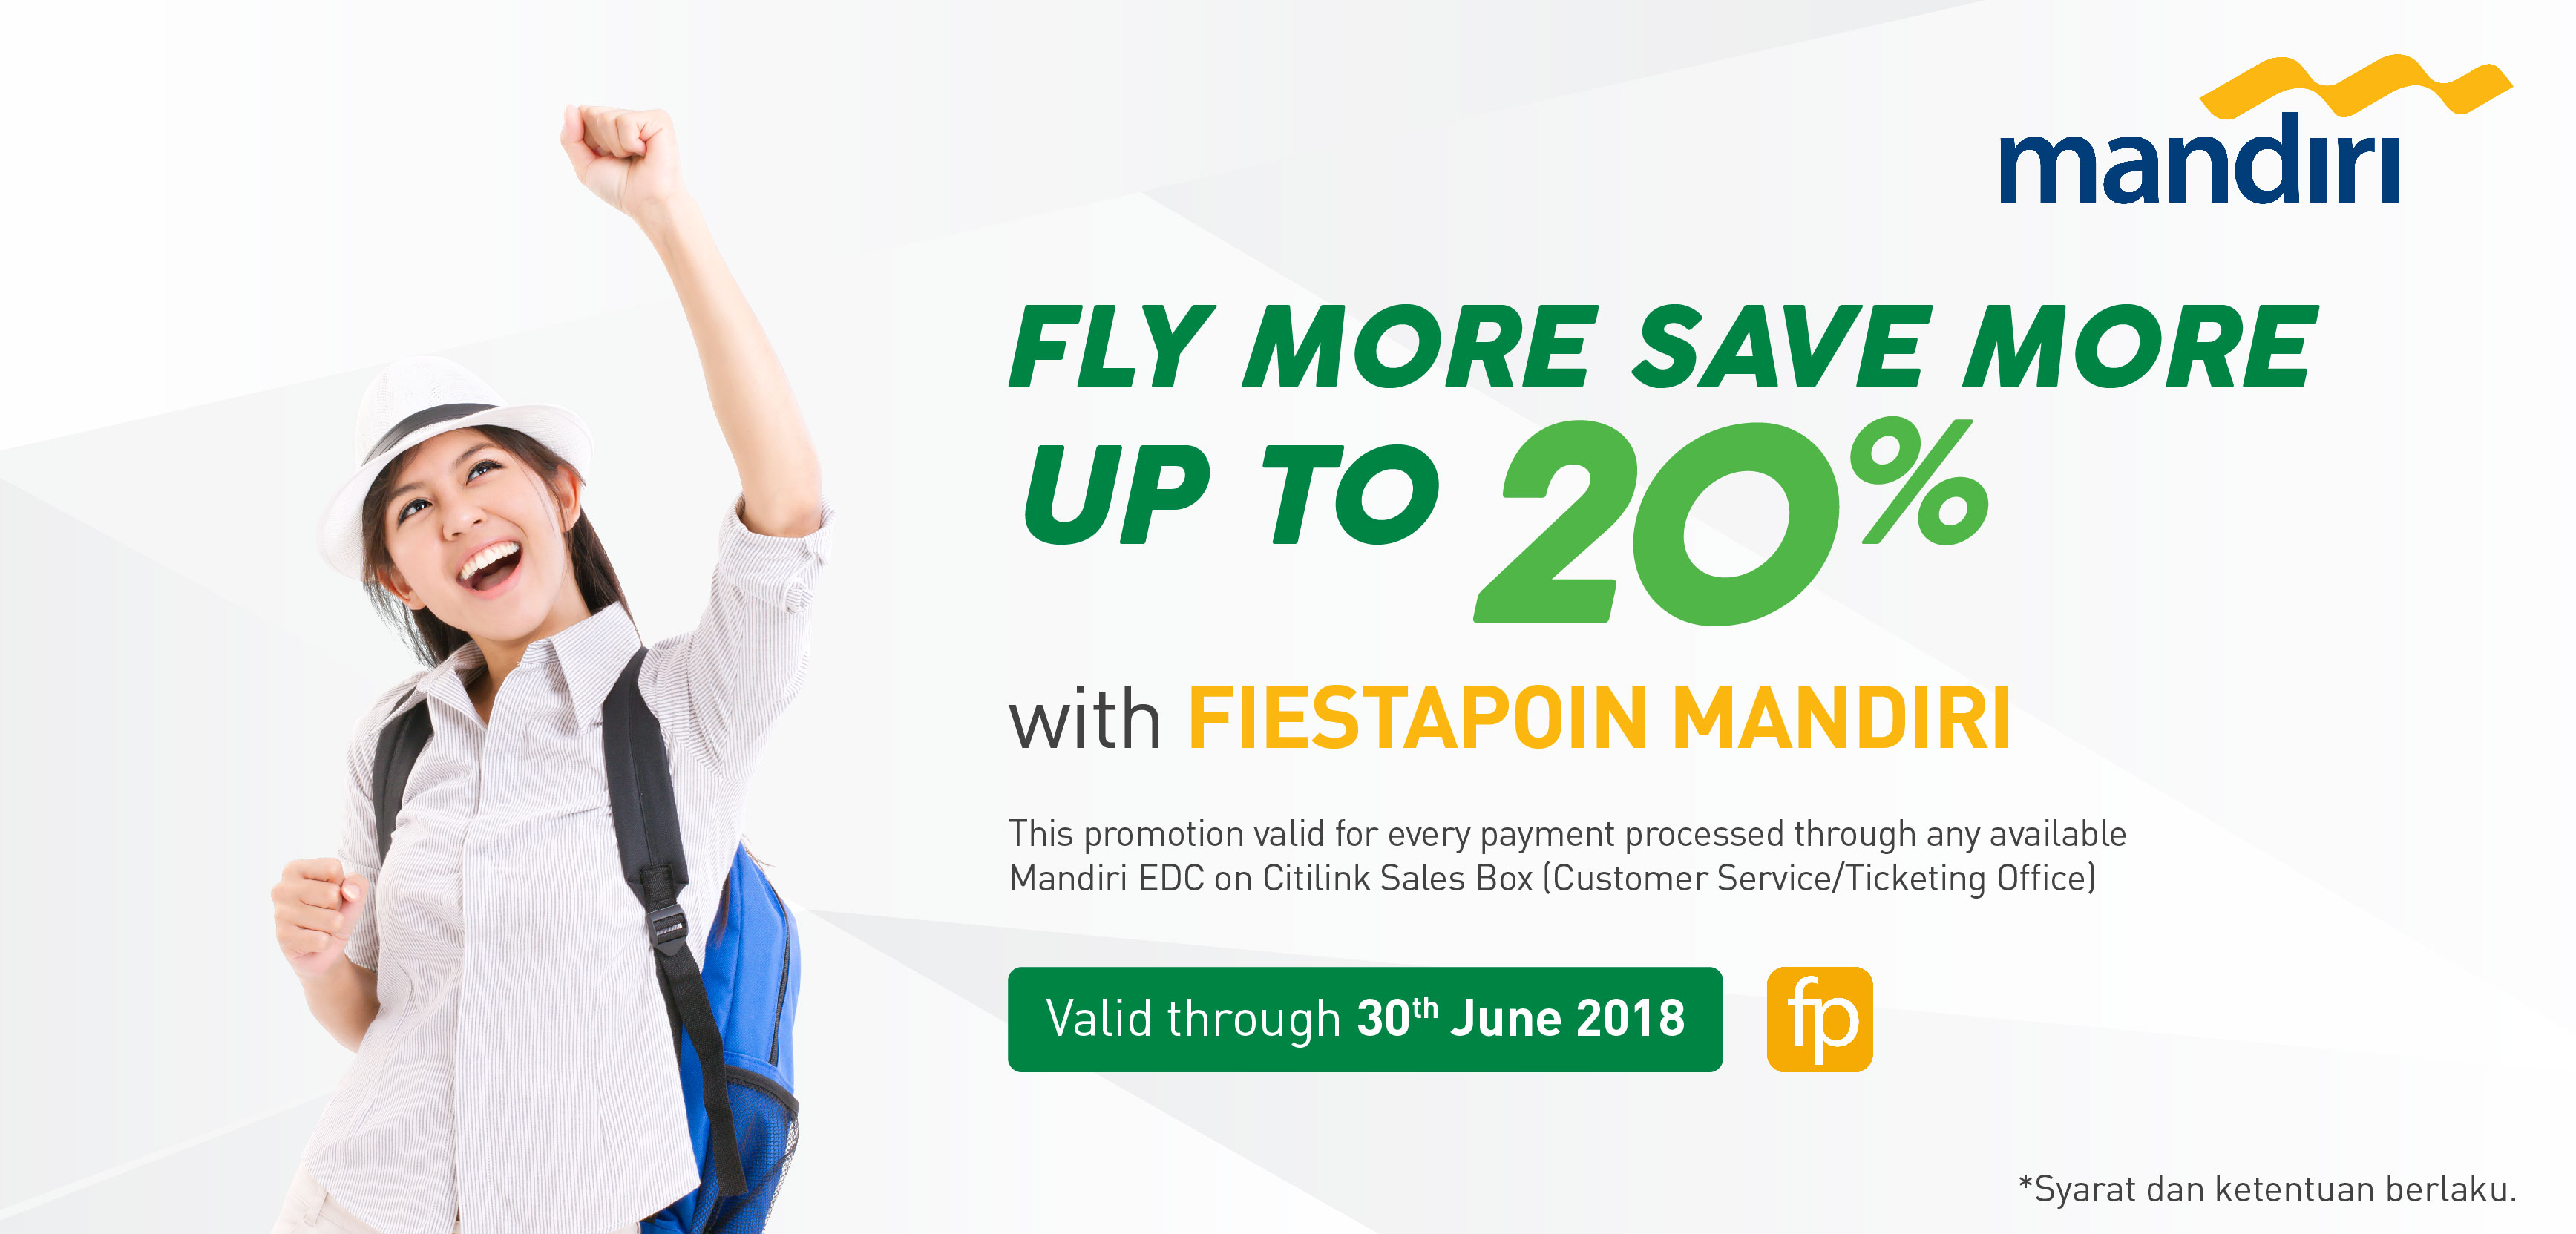 citilink-flight-promo-fiestapoin-mandiri-credit-card-2018